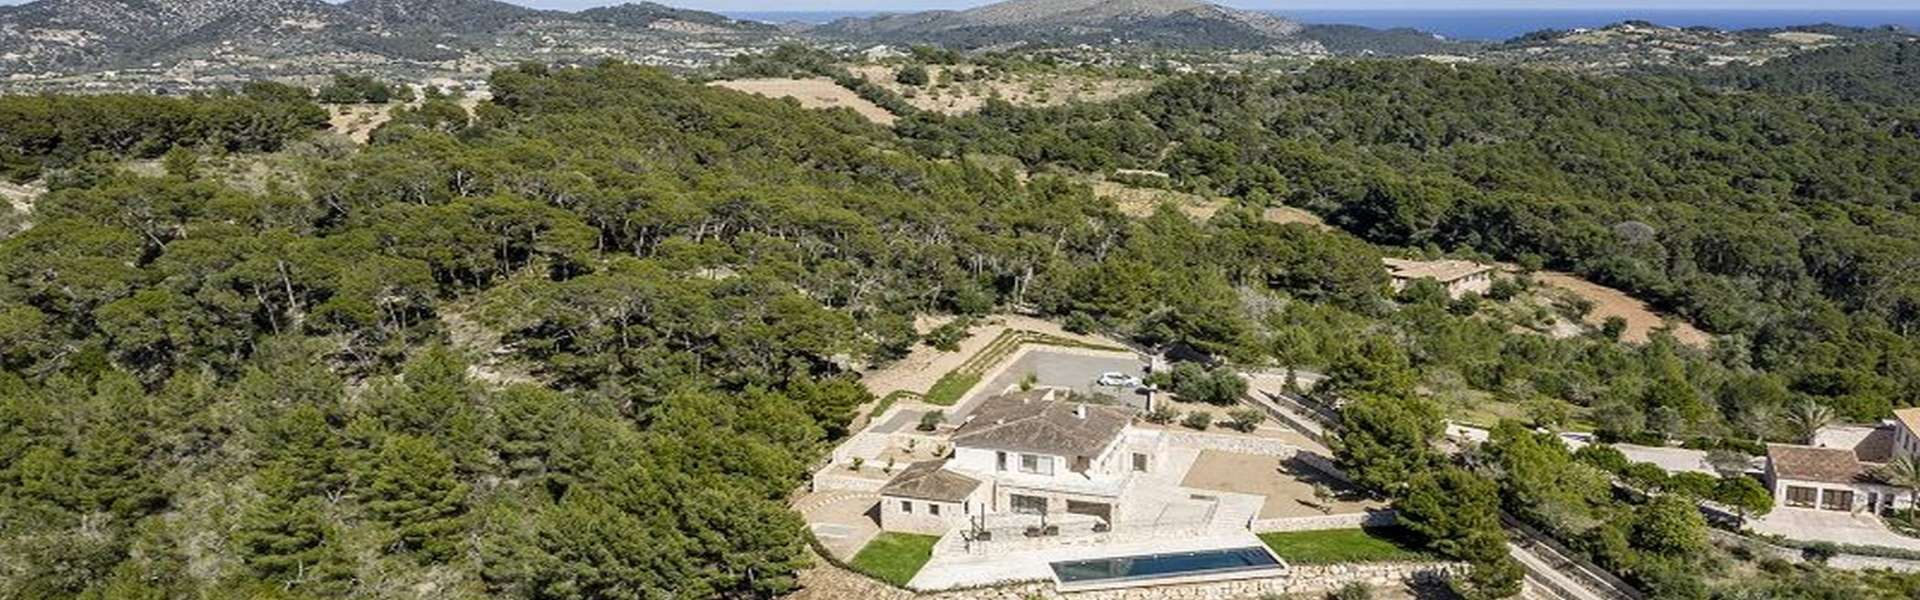 New built Finca with spectacular views - Felanitx